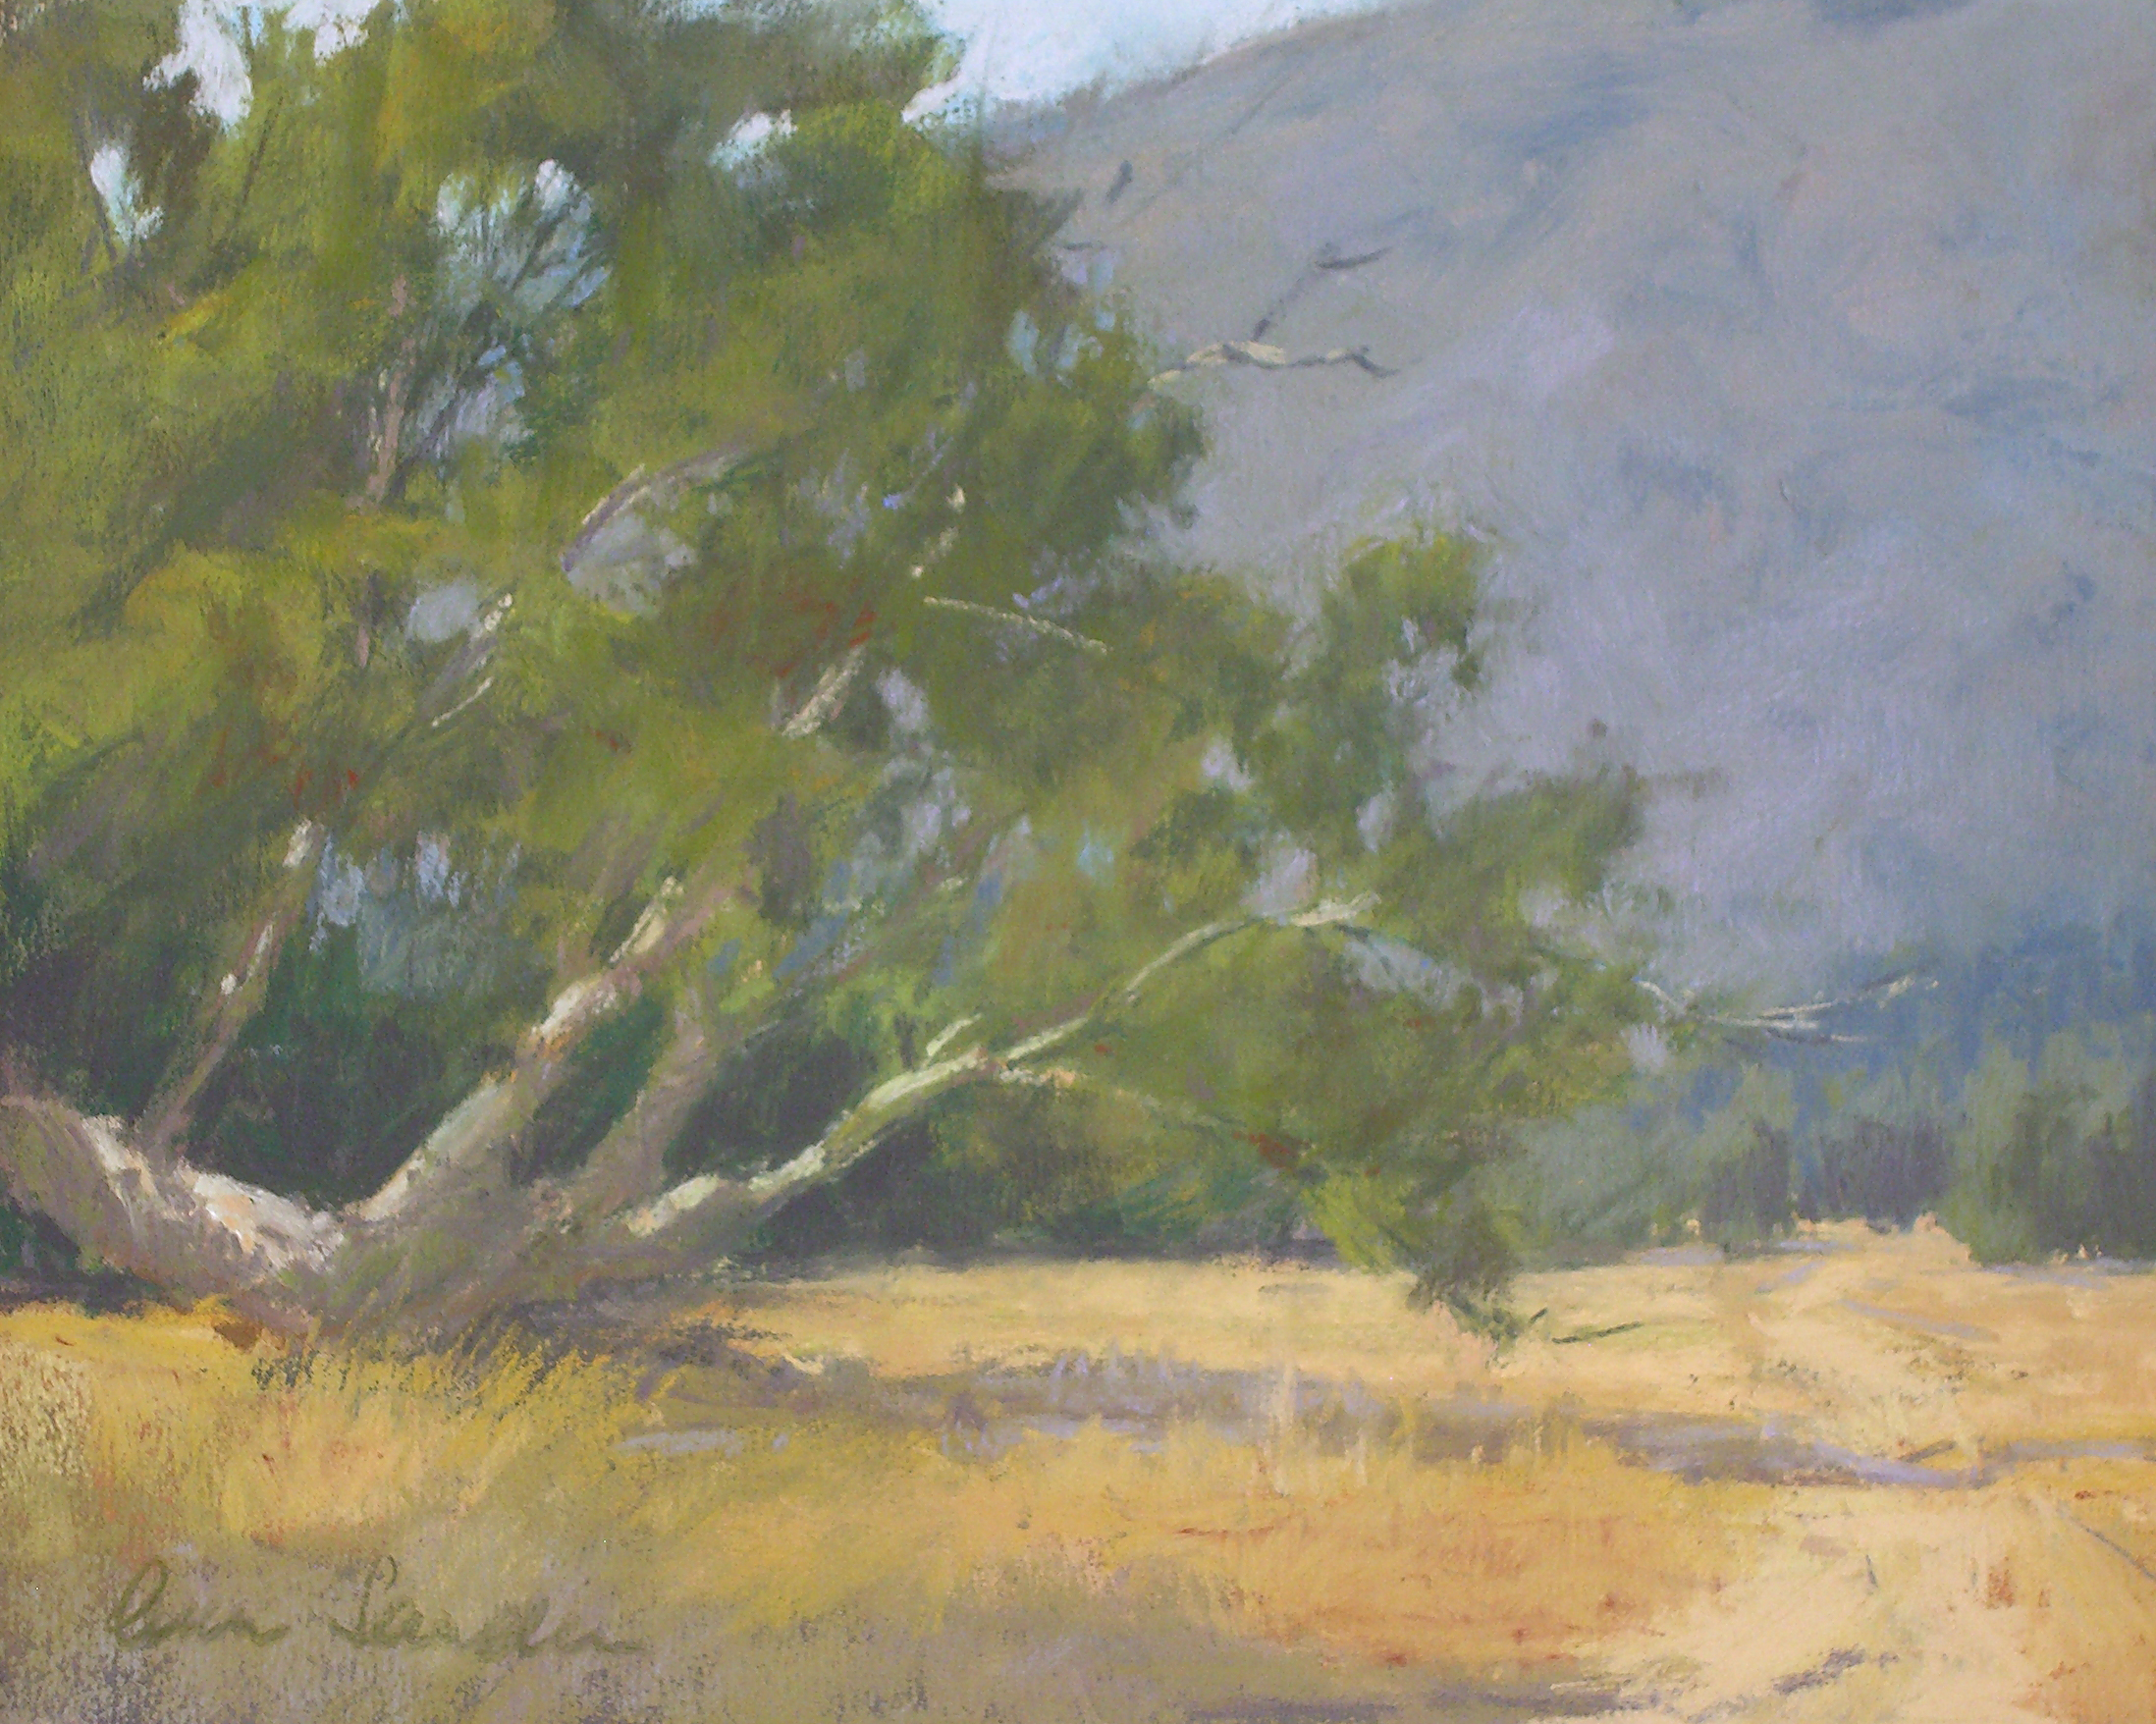 Figueroa Mountain Road, pastel, 8x10